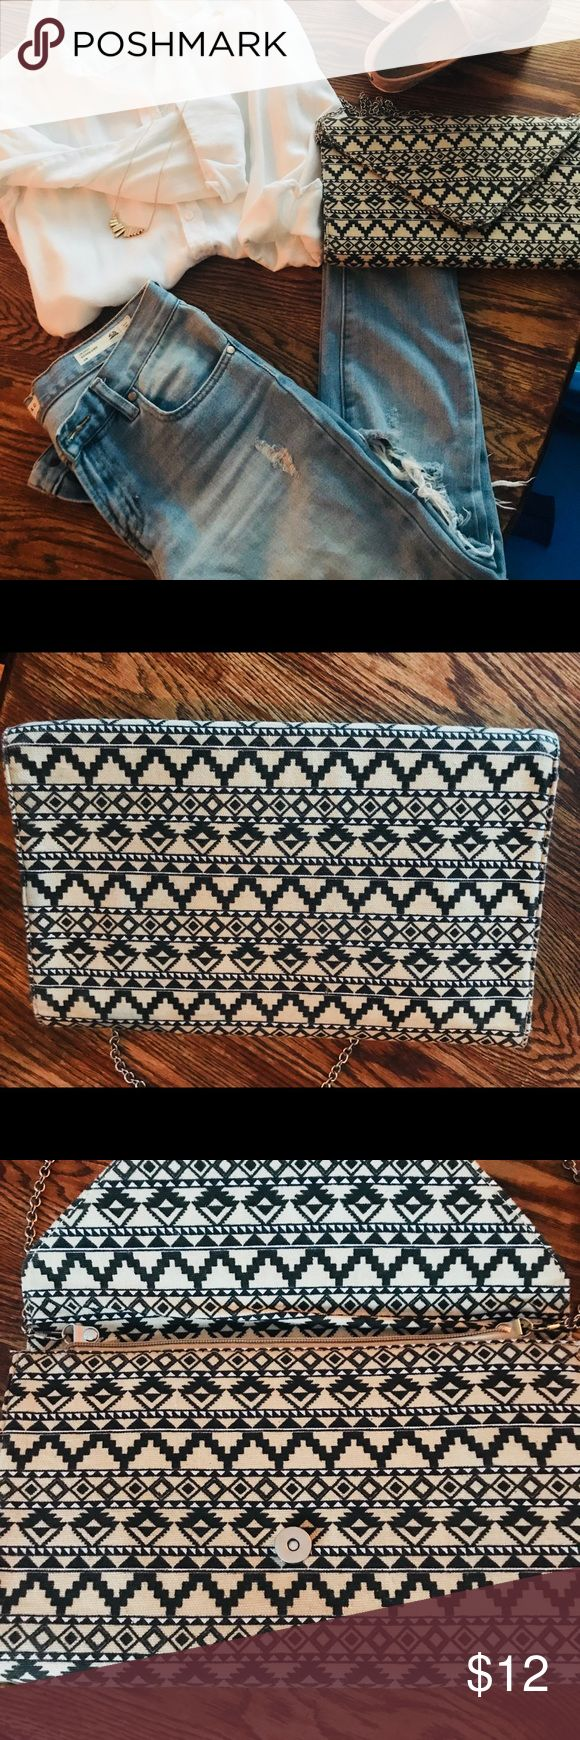 Aztec print hand bag/ over the shoulder bag. Super cute Aztec print bag. Lays flat, silver long strap. Looks great with plain colors to add a little pop! Bags Crossbody Bags